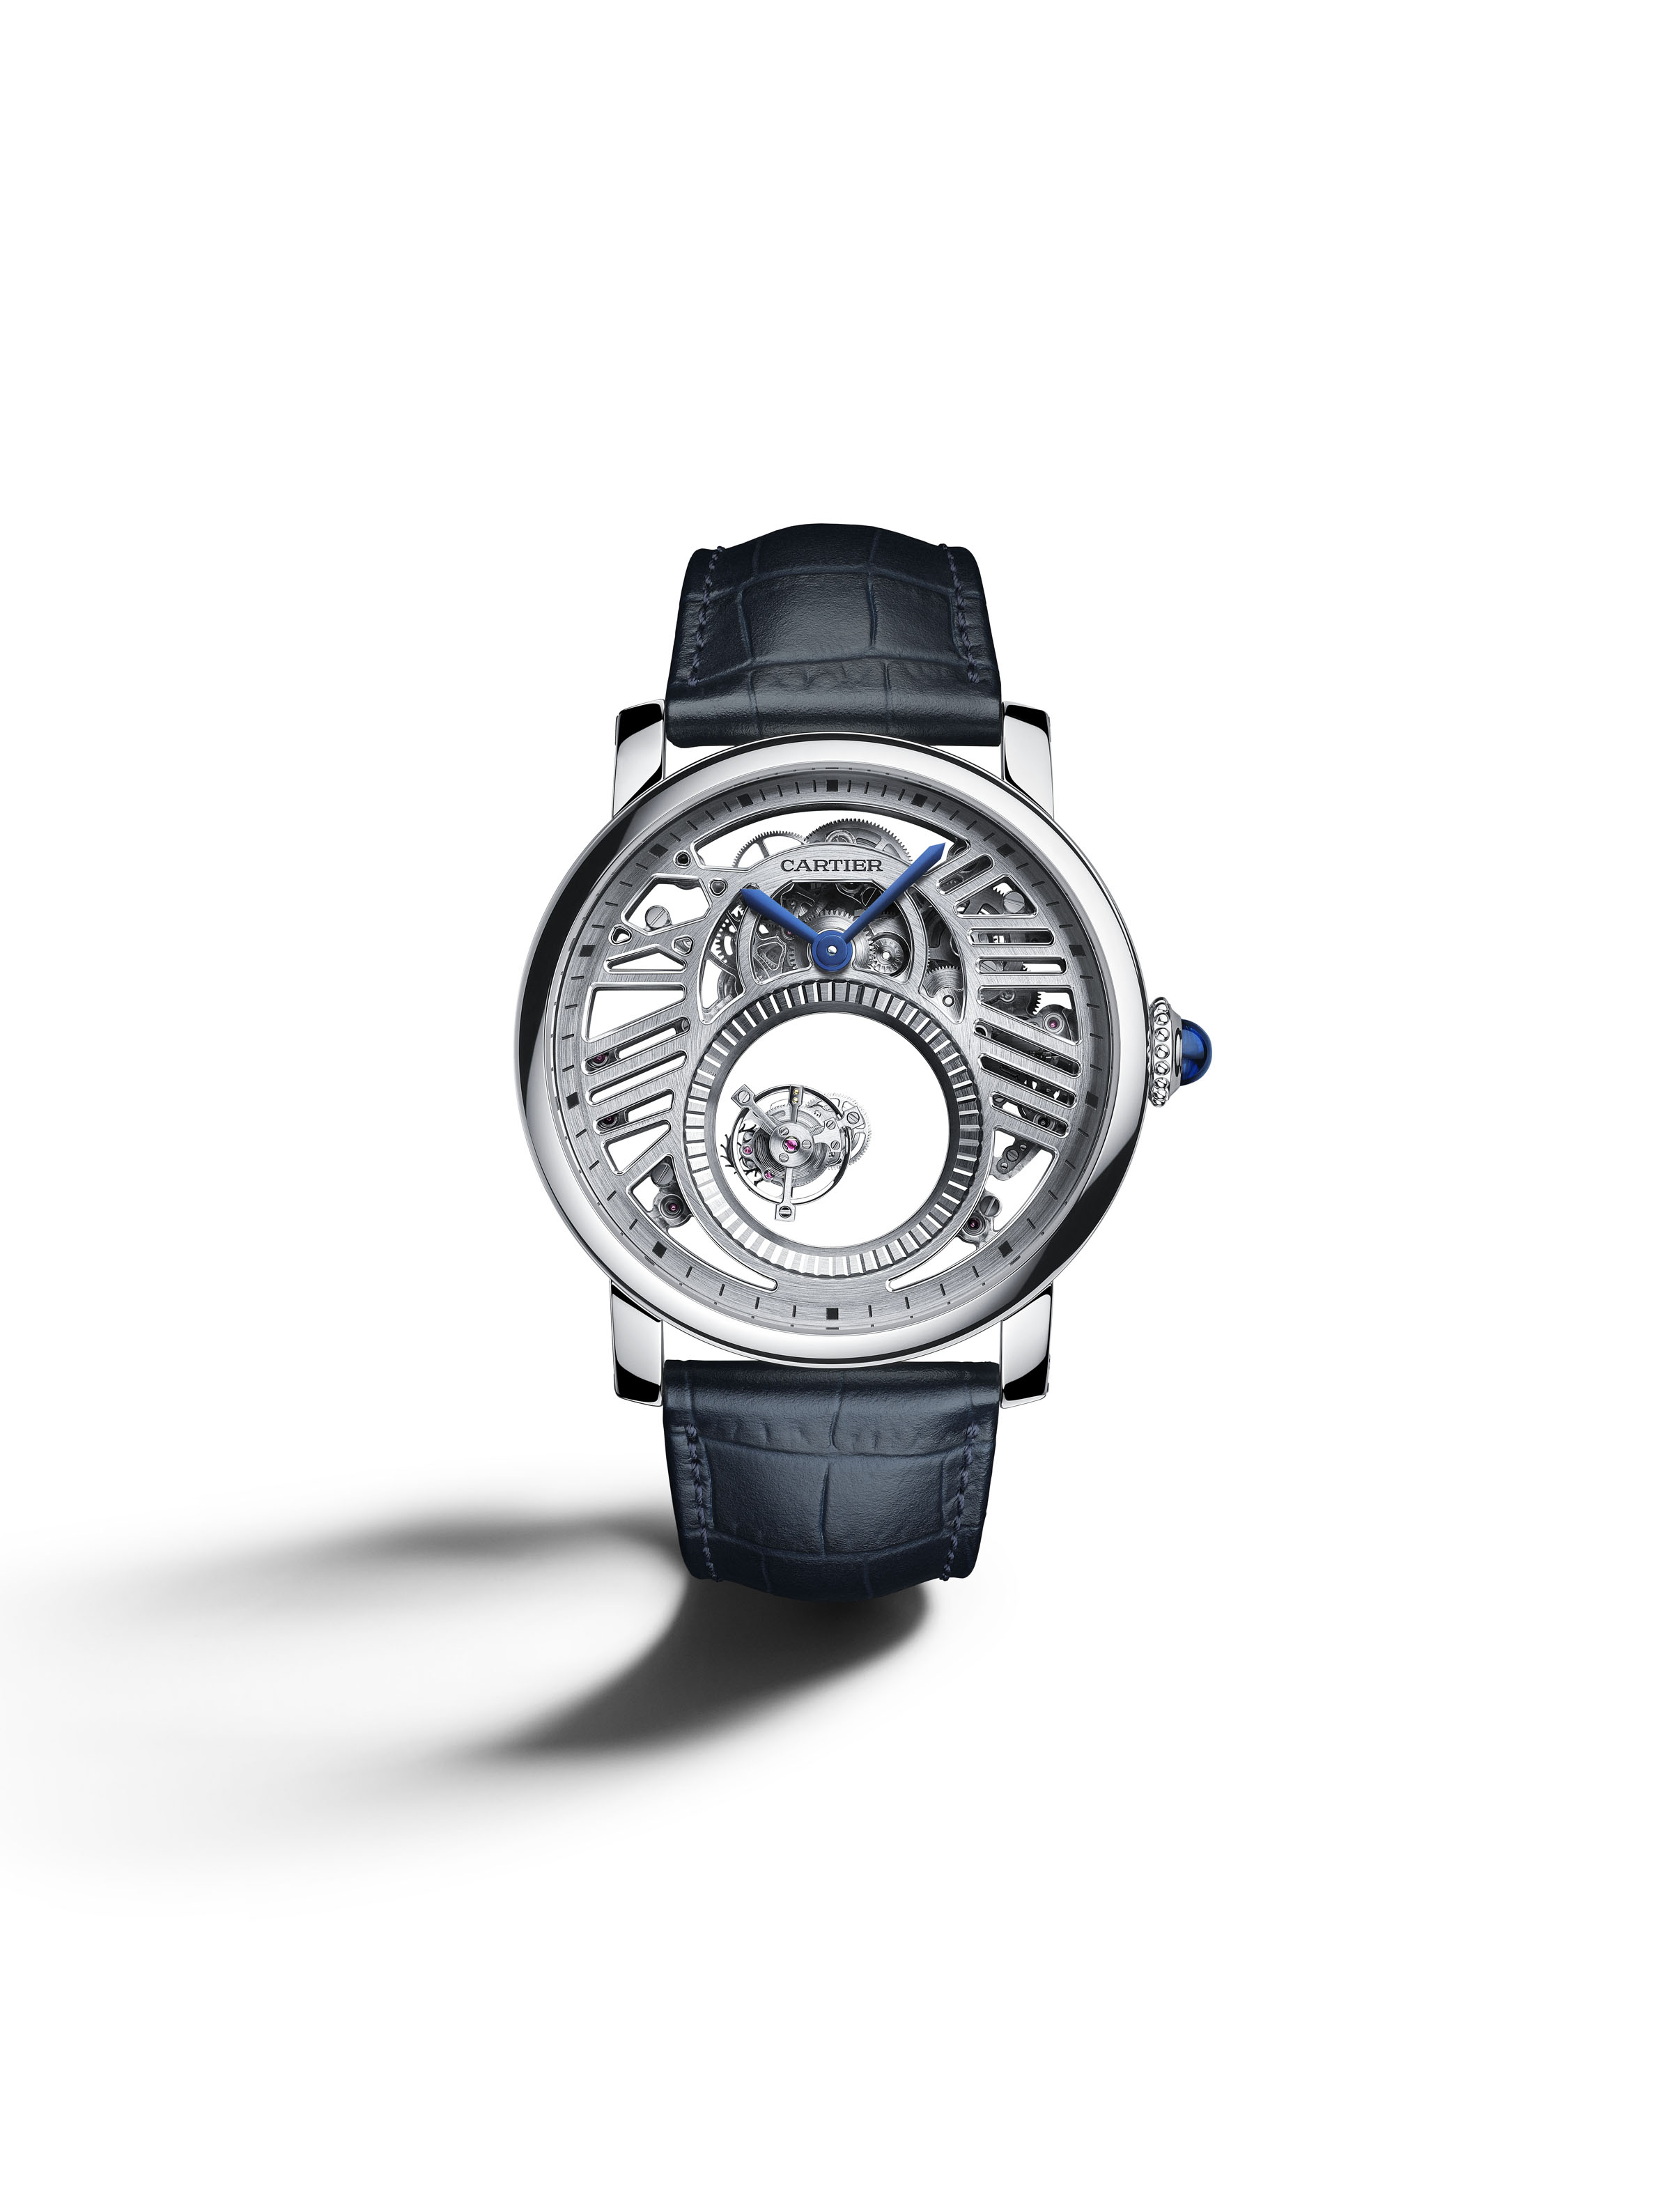 SIHH 2018: Cartier Rotonde de' Cartier Skeleton Mysterious Double Tourbillon is powered by the caliber 9465 MC, made in house.